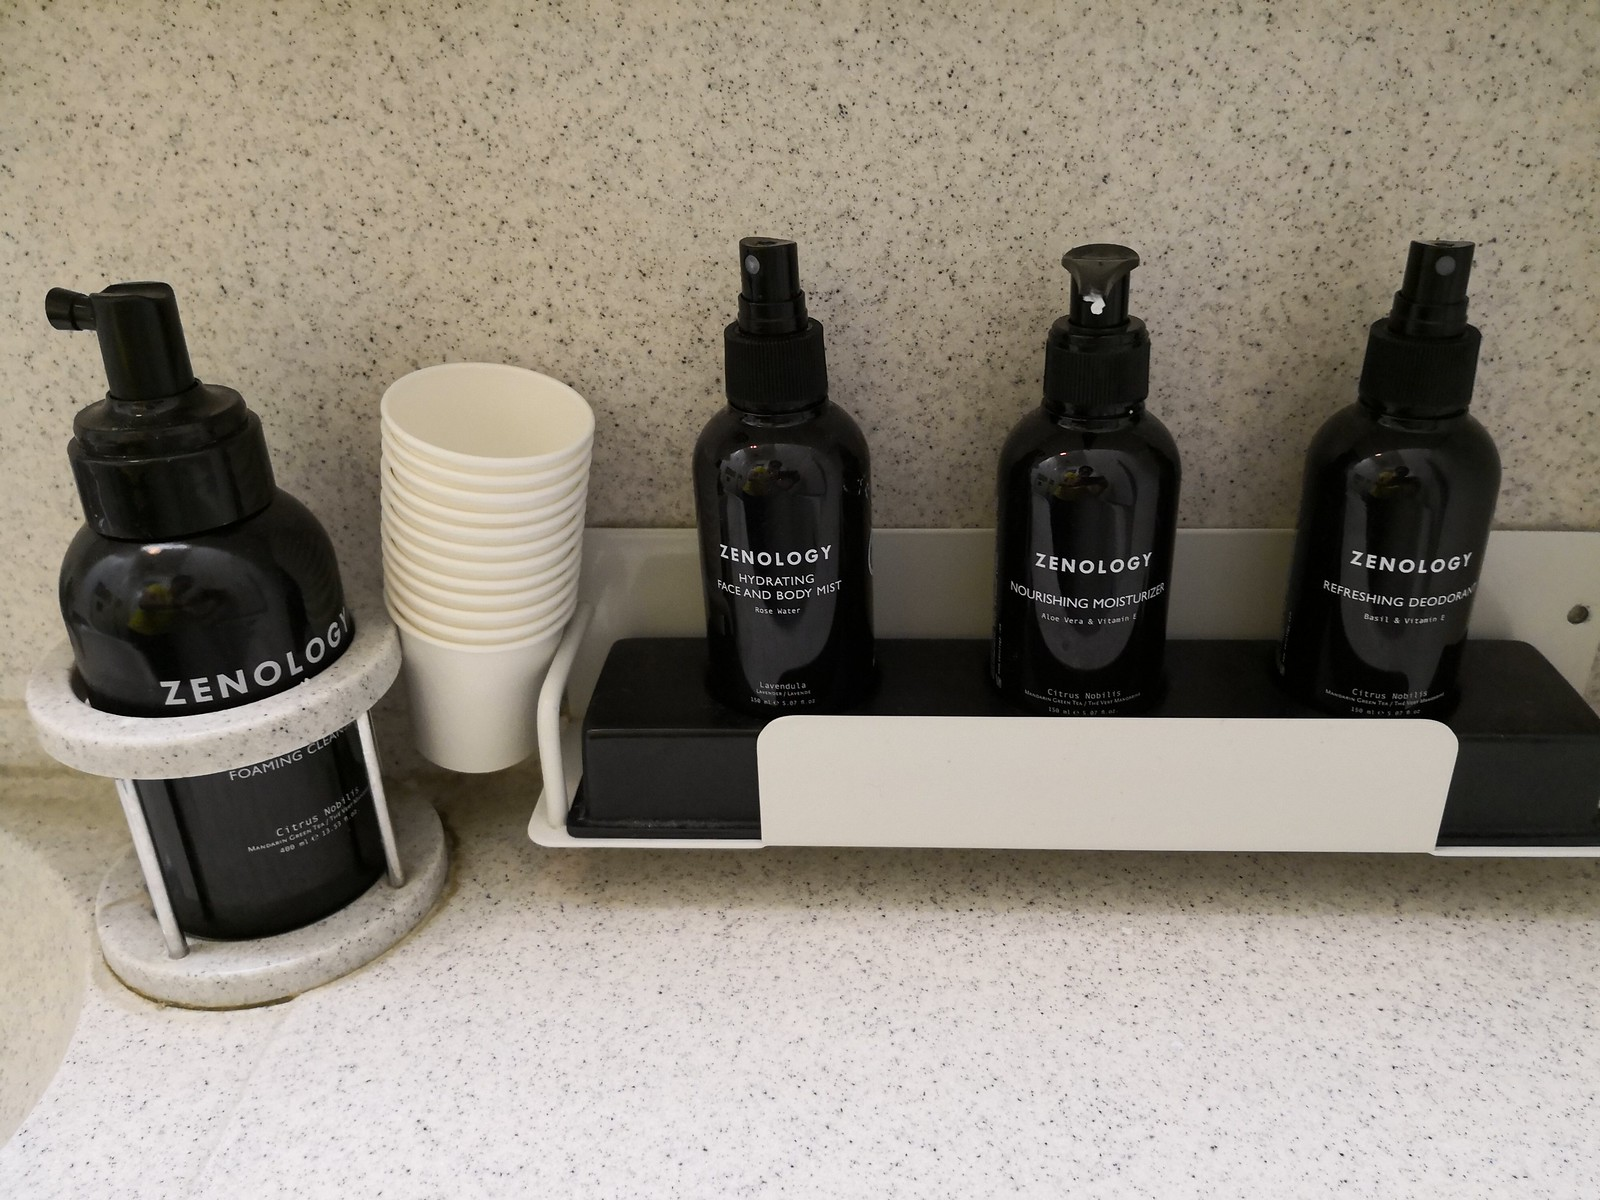 Amenities in the lavatory